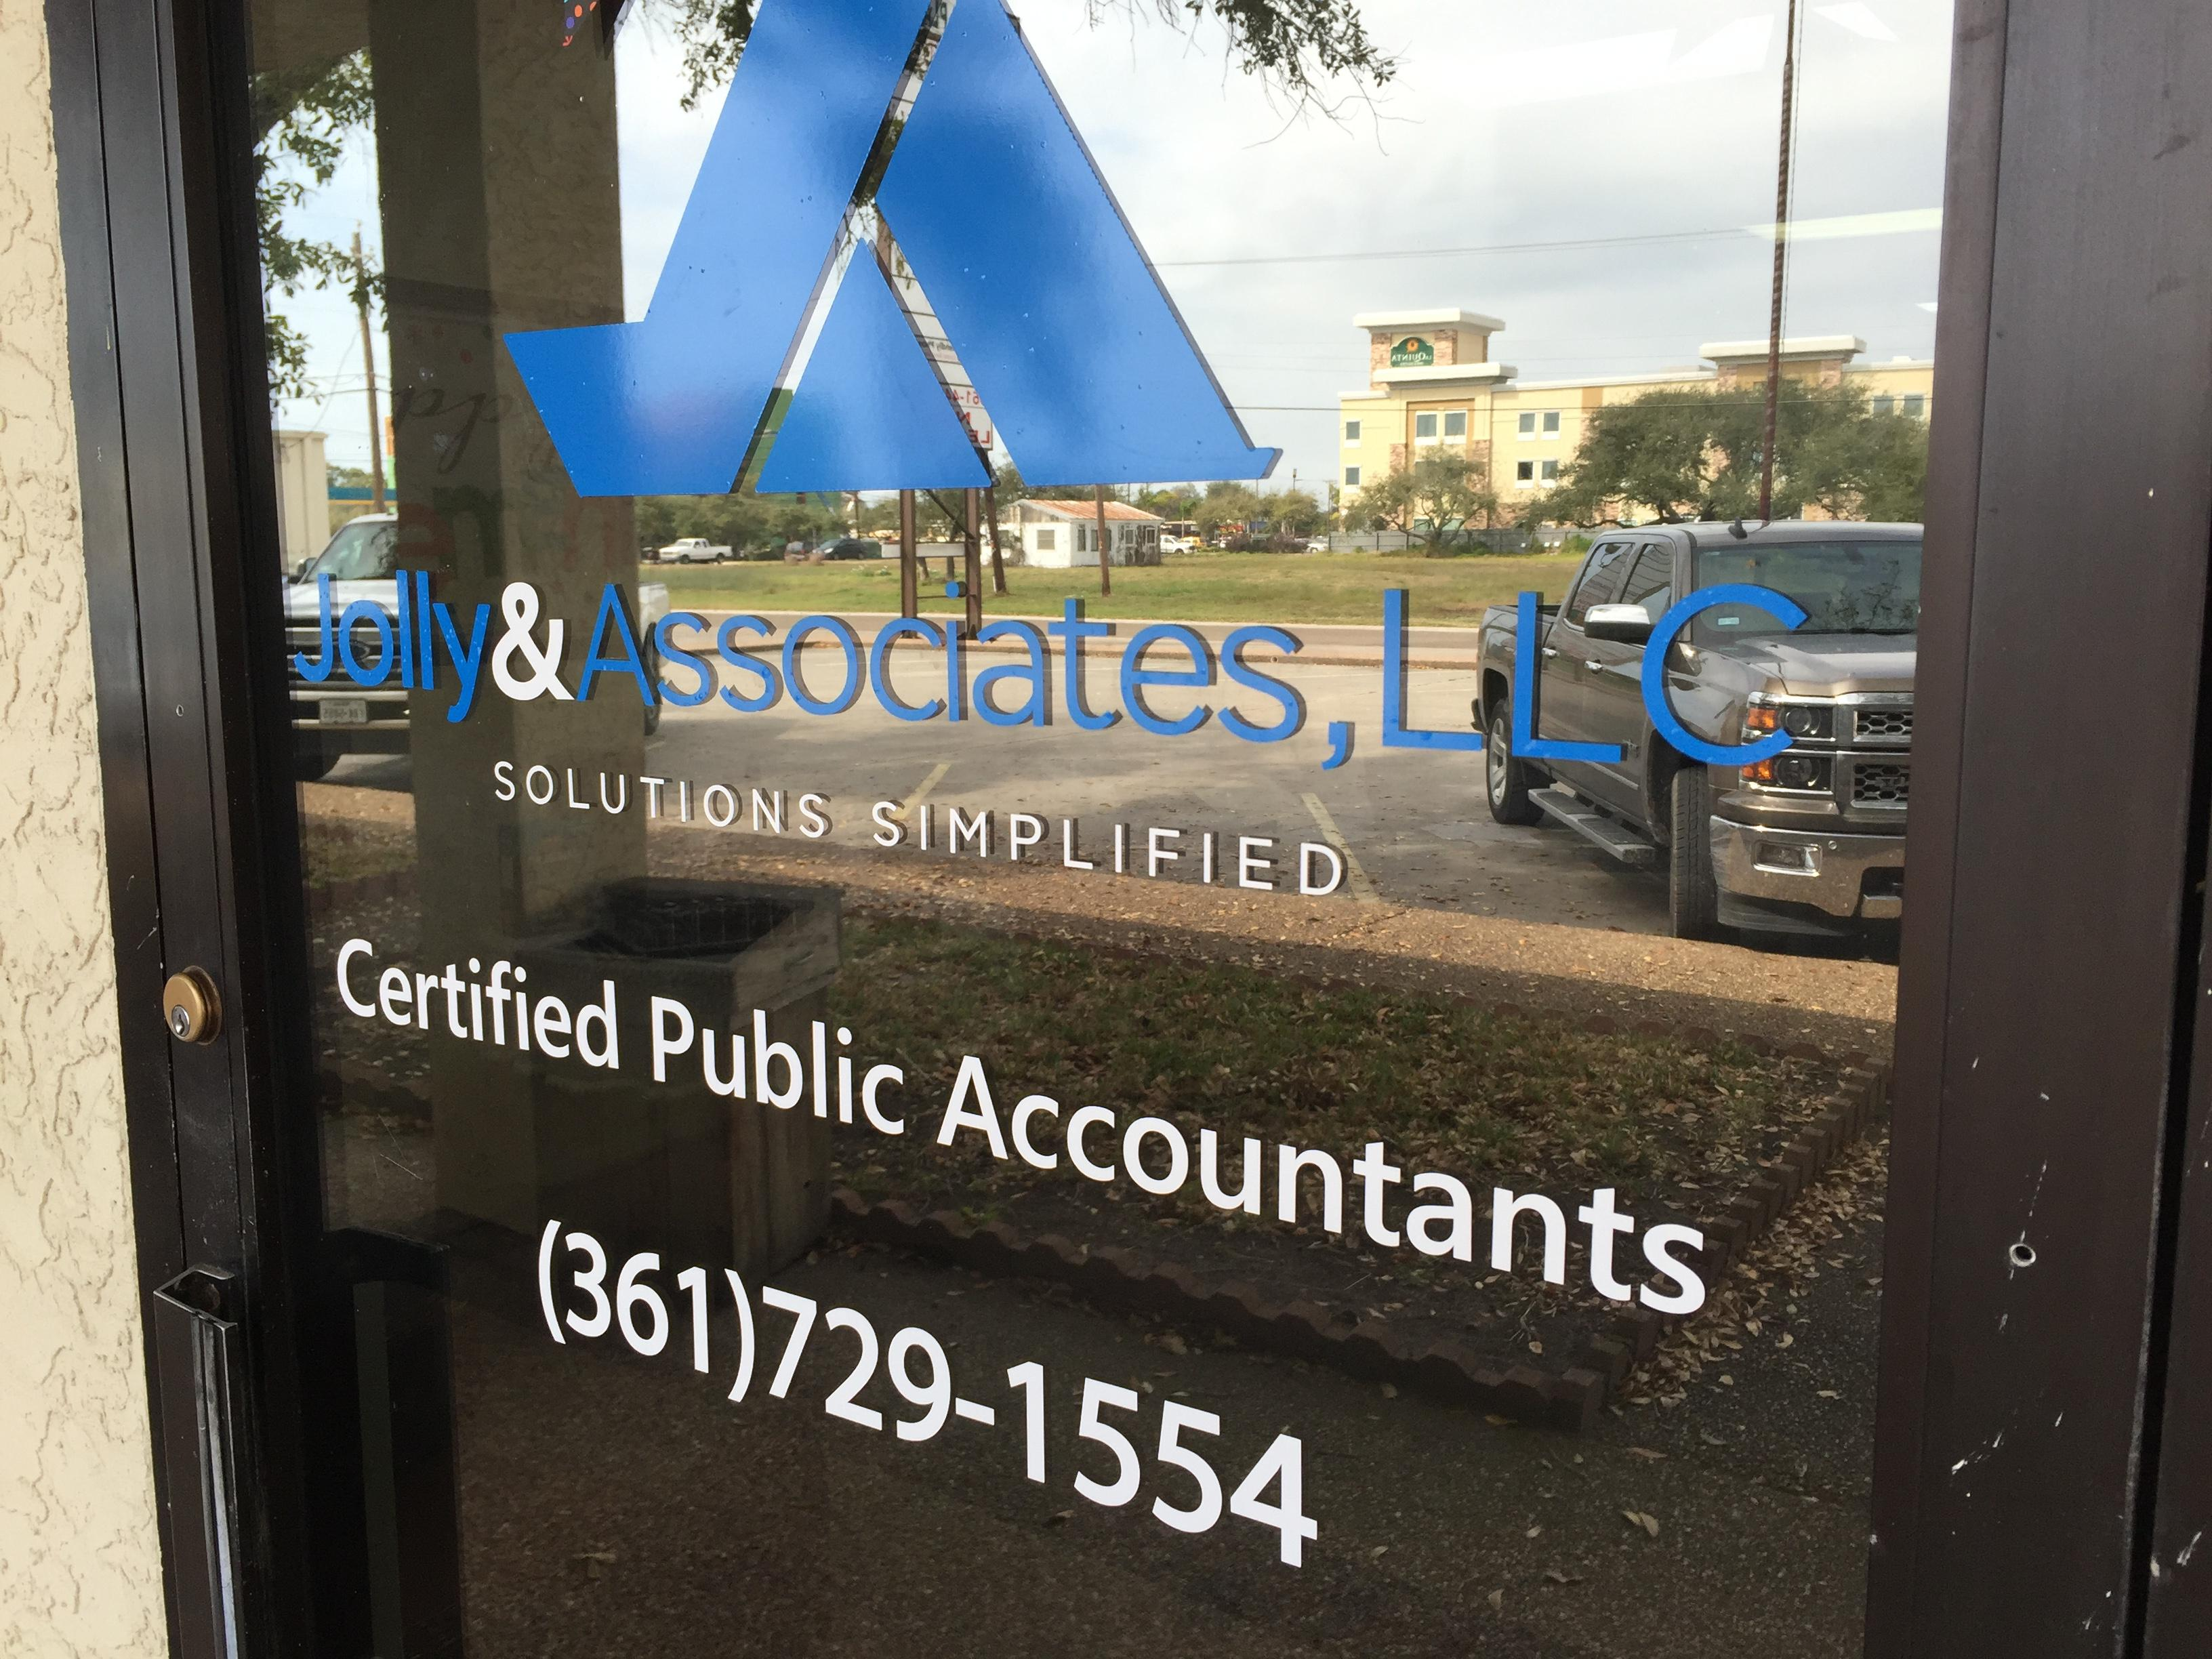 Jolly & Associates, LLC